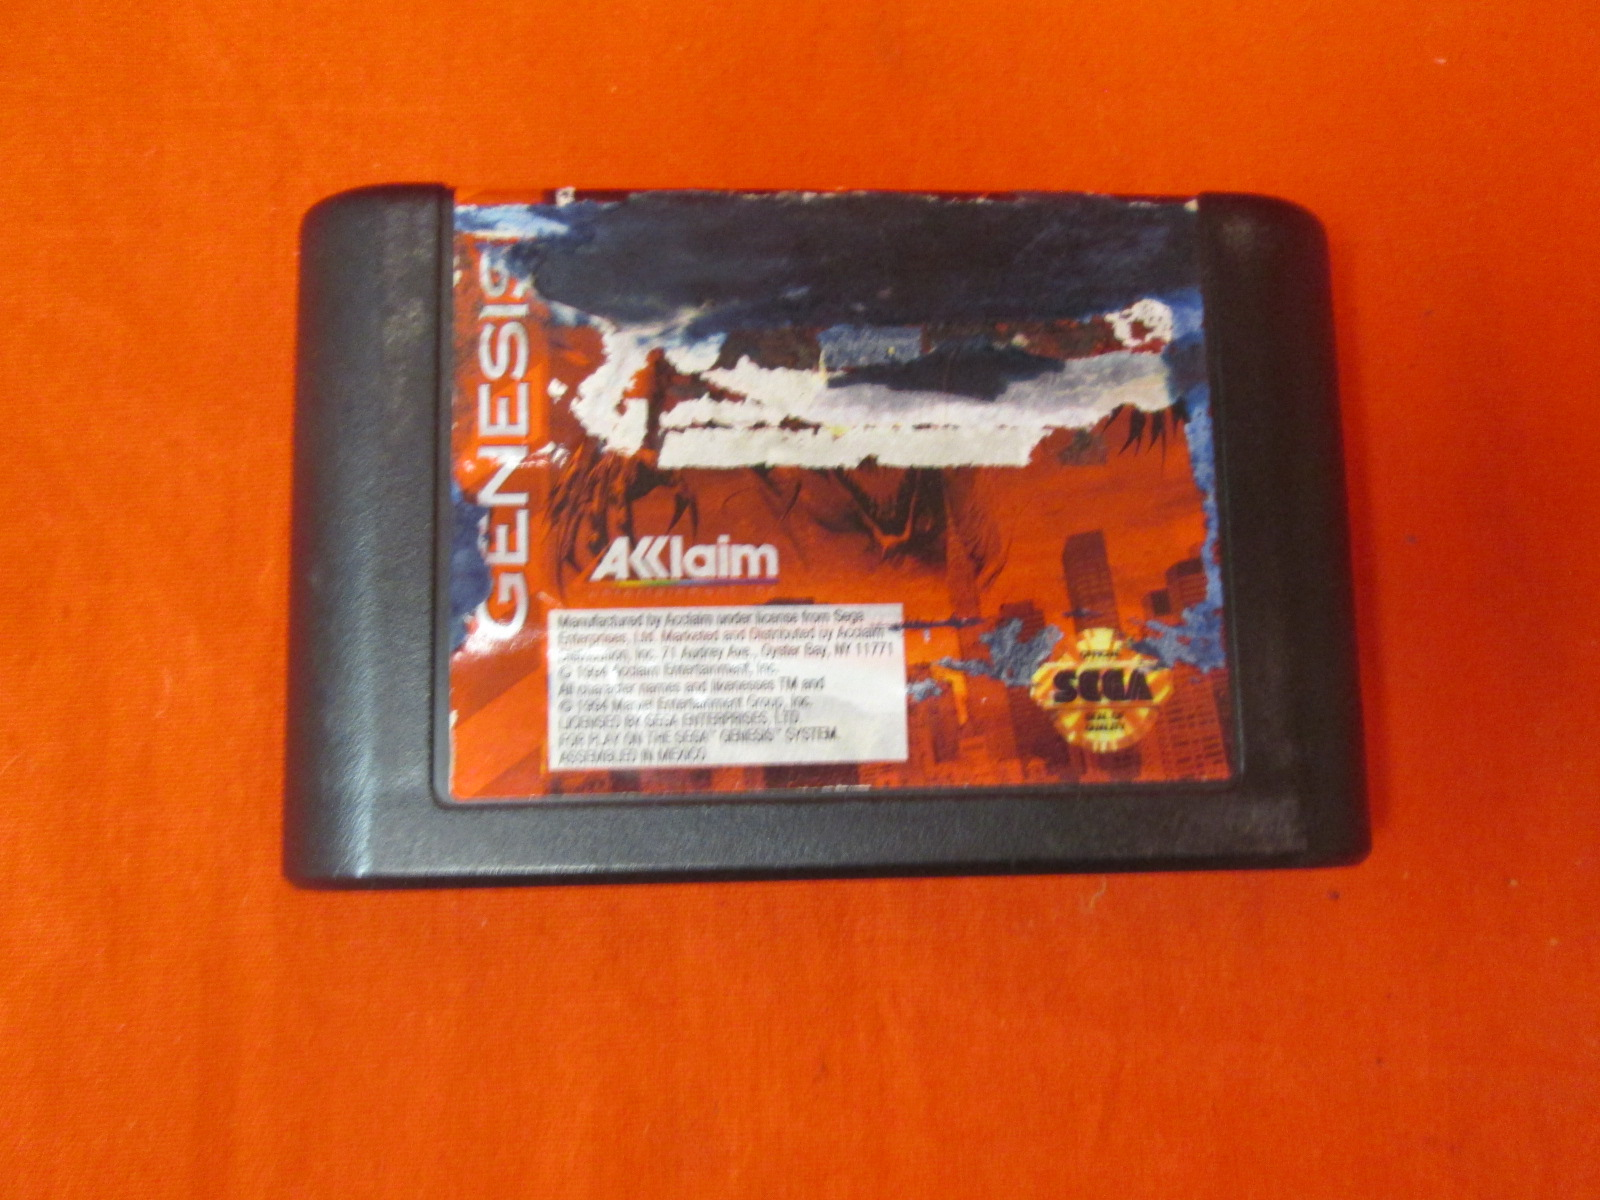 Spider-Man / Venom: Maximum Carnage For Sega Genesis